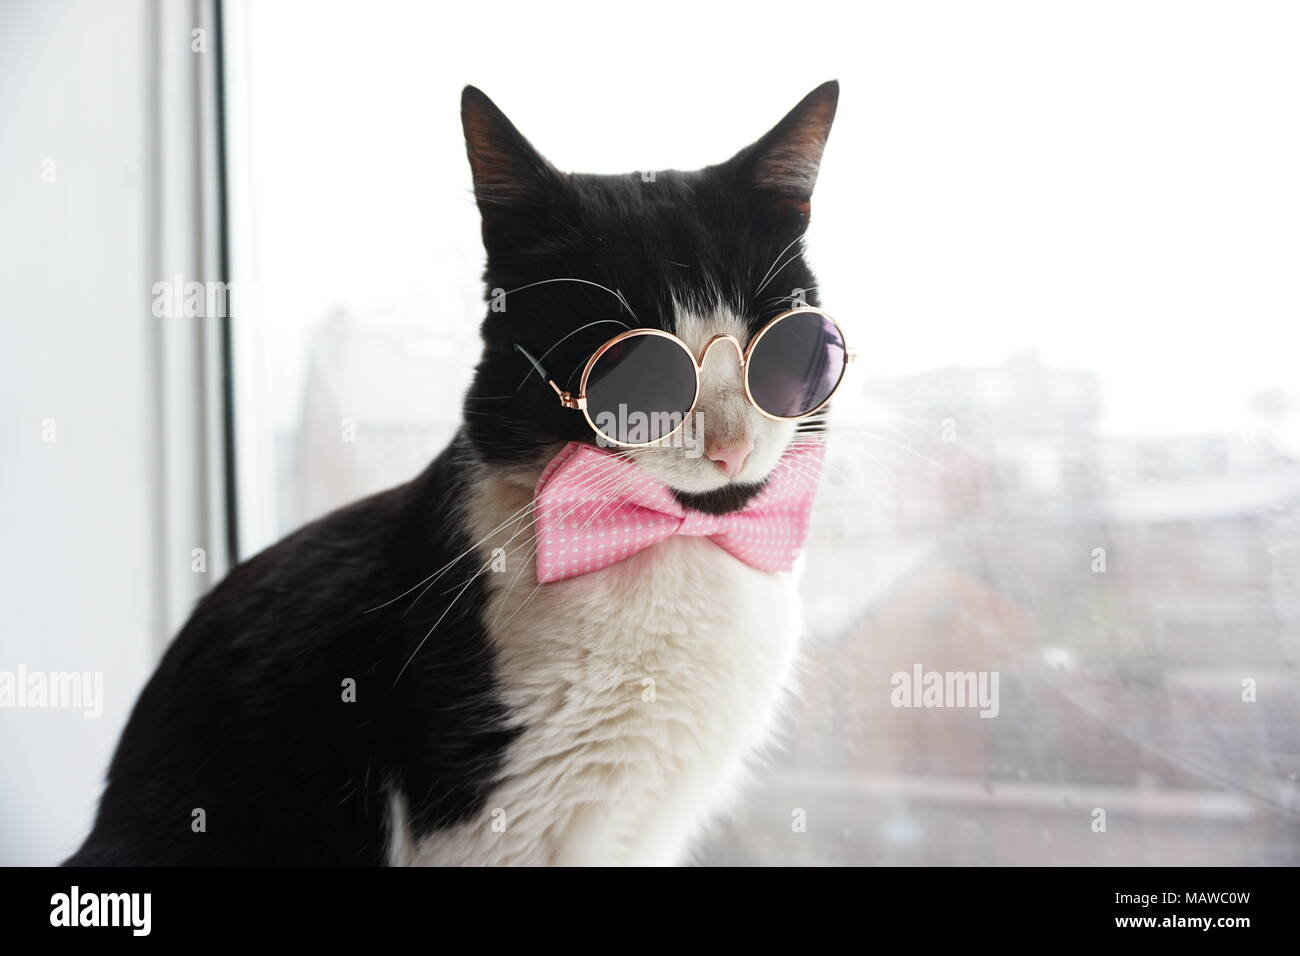 Black & White Cat with glasses and bow tie - Stock Image